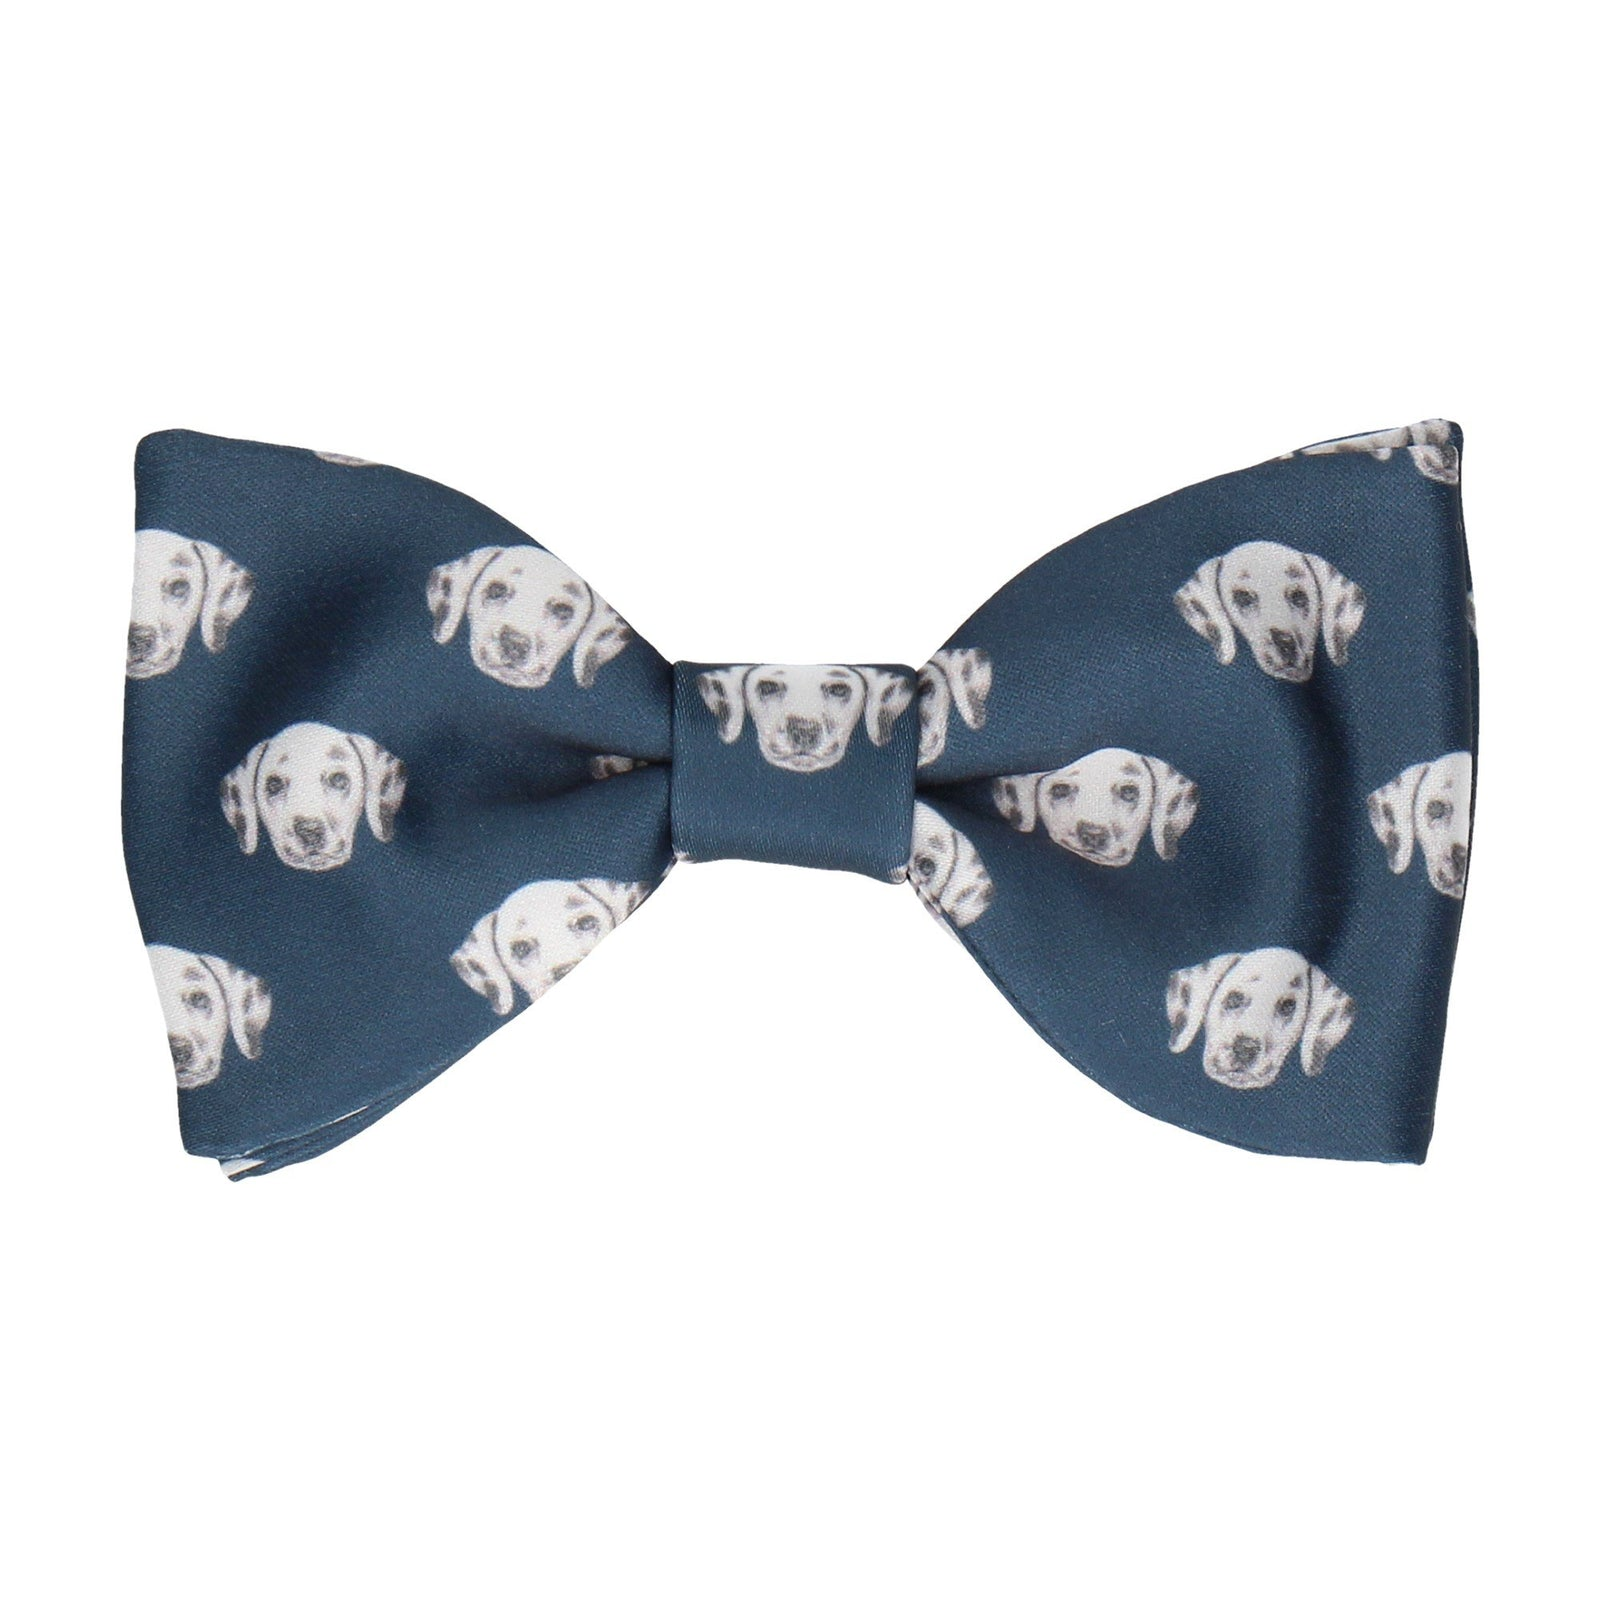 Dalmation Face Navy Blue Bow Tie